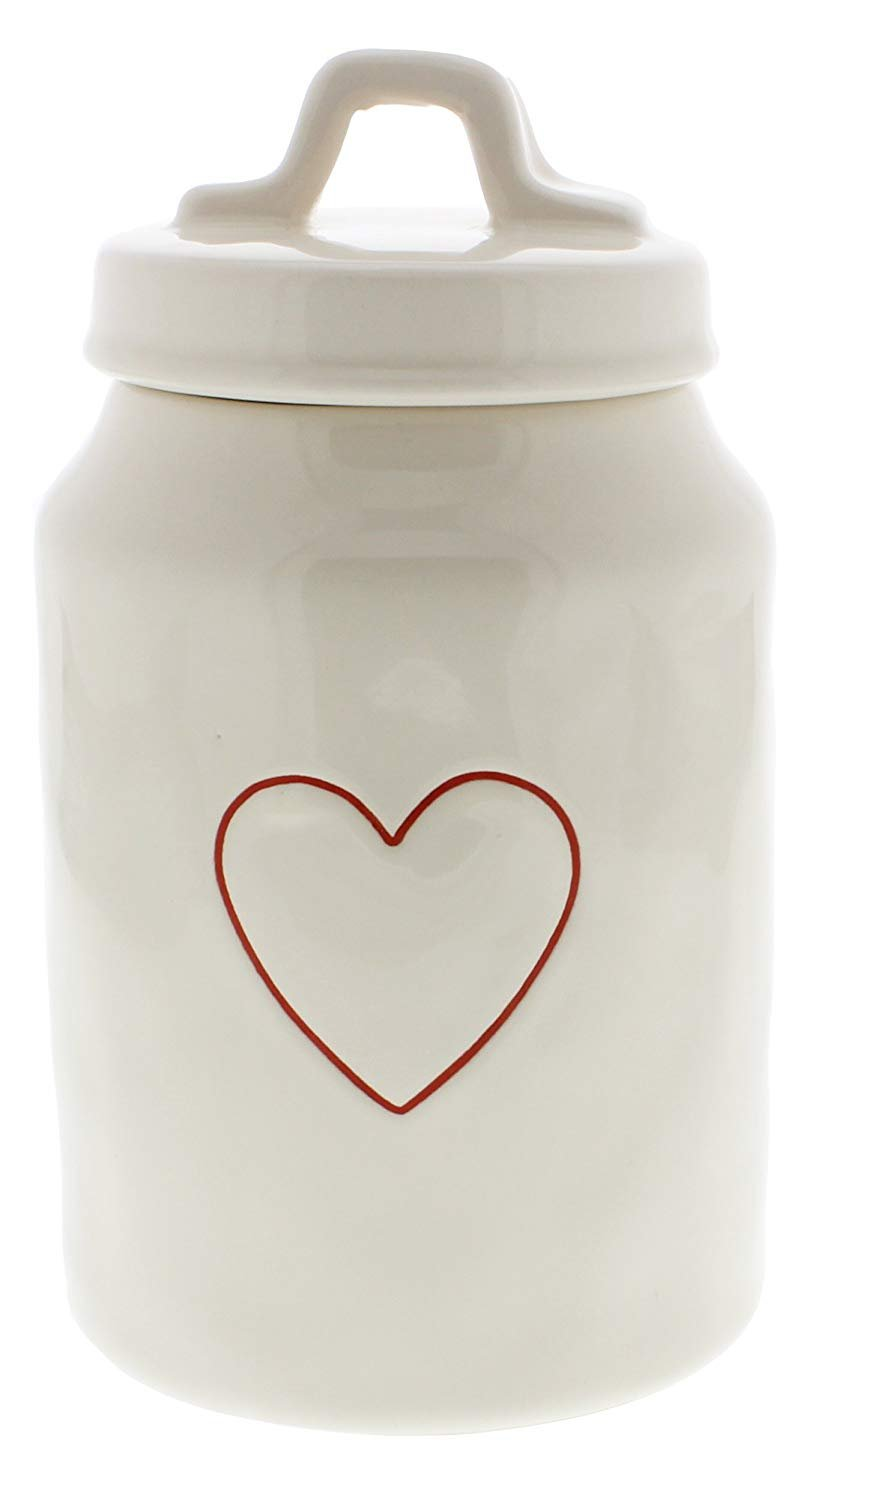 rae dunn magenta red heart valentines canister